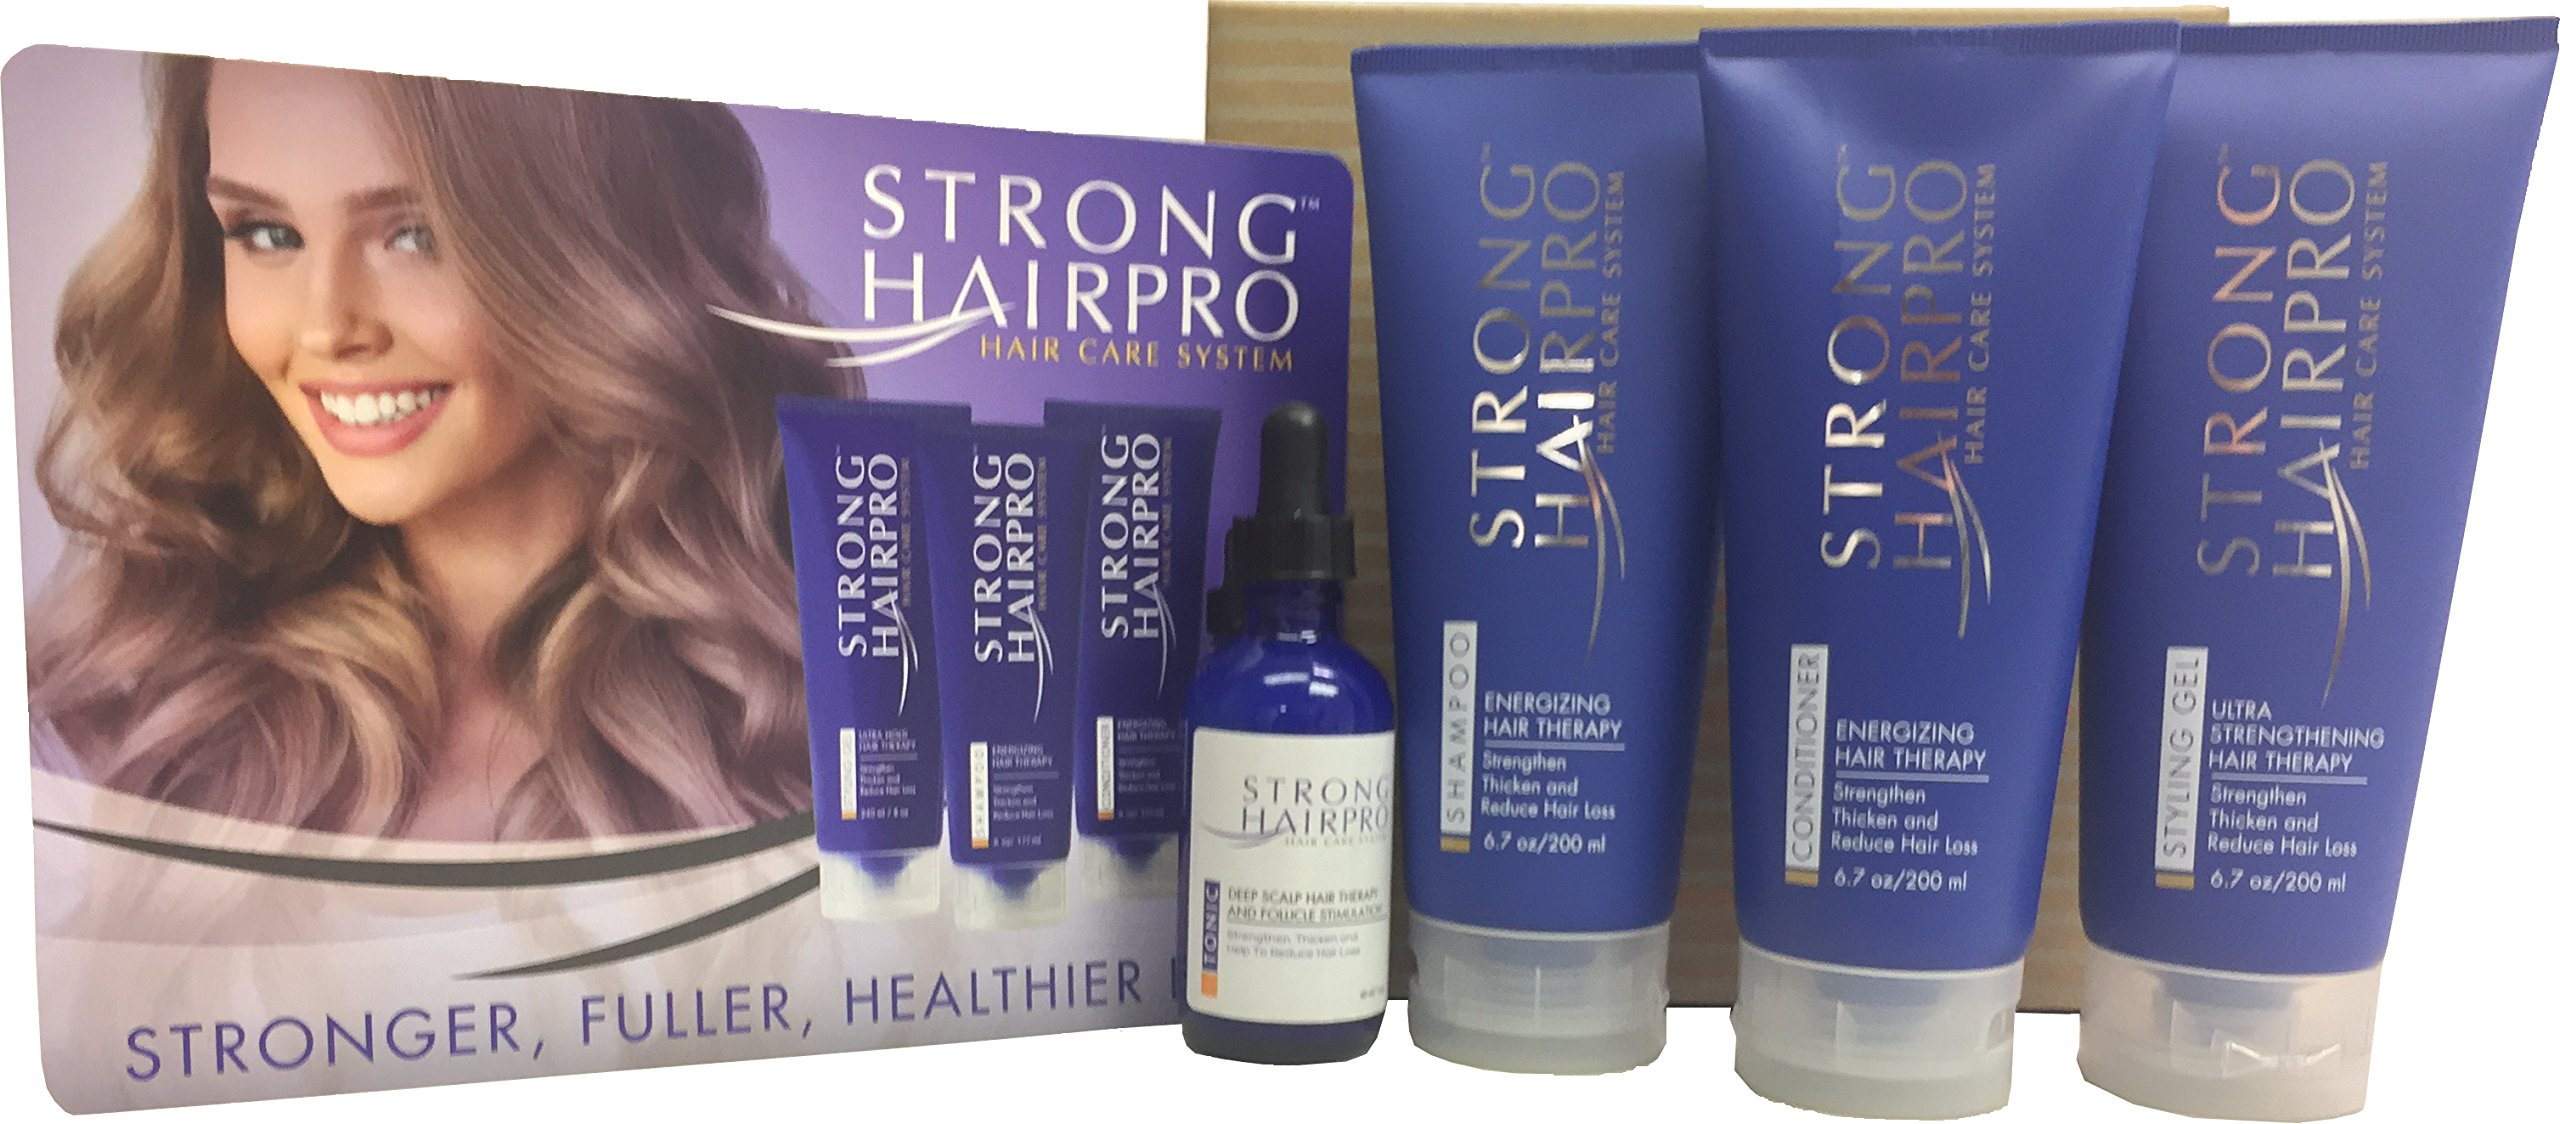 Strong HairPro Hair Care System - Deep Scalp Hair Therapy & Follicle Stimulation (Full Set)